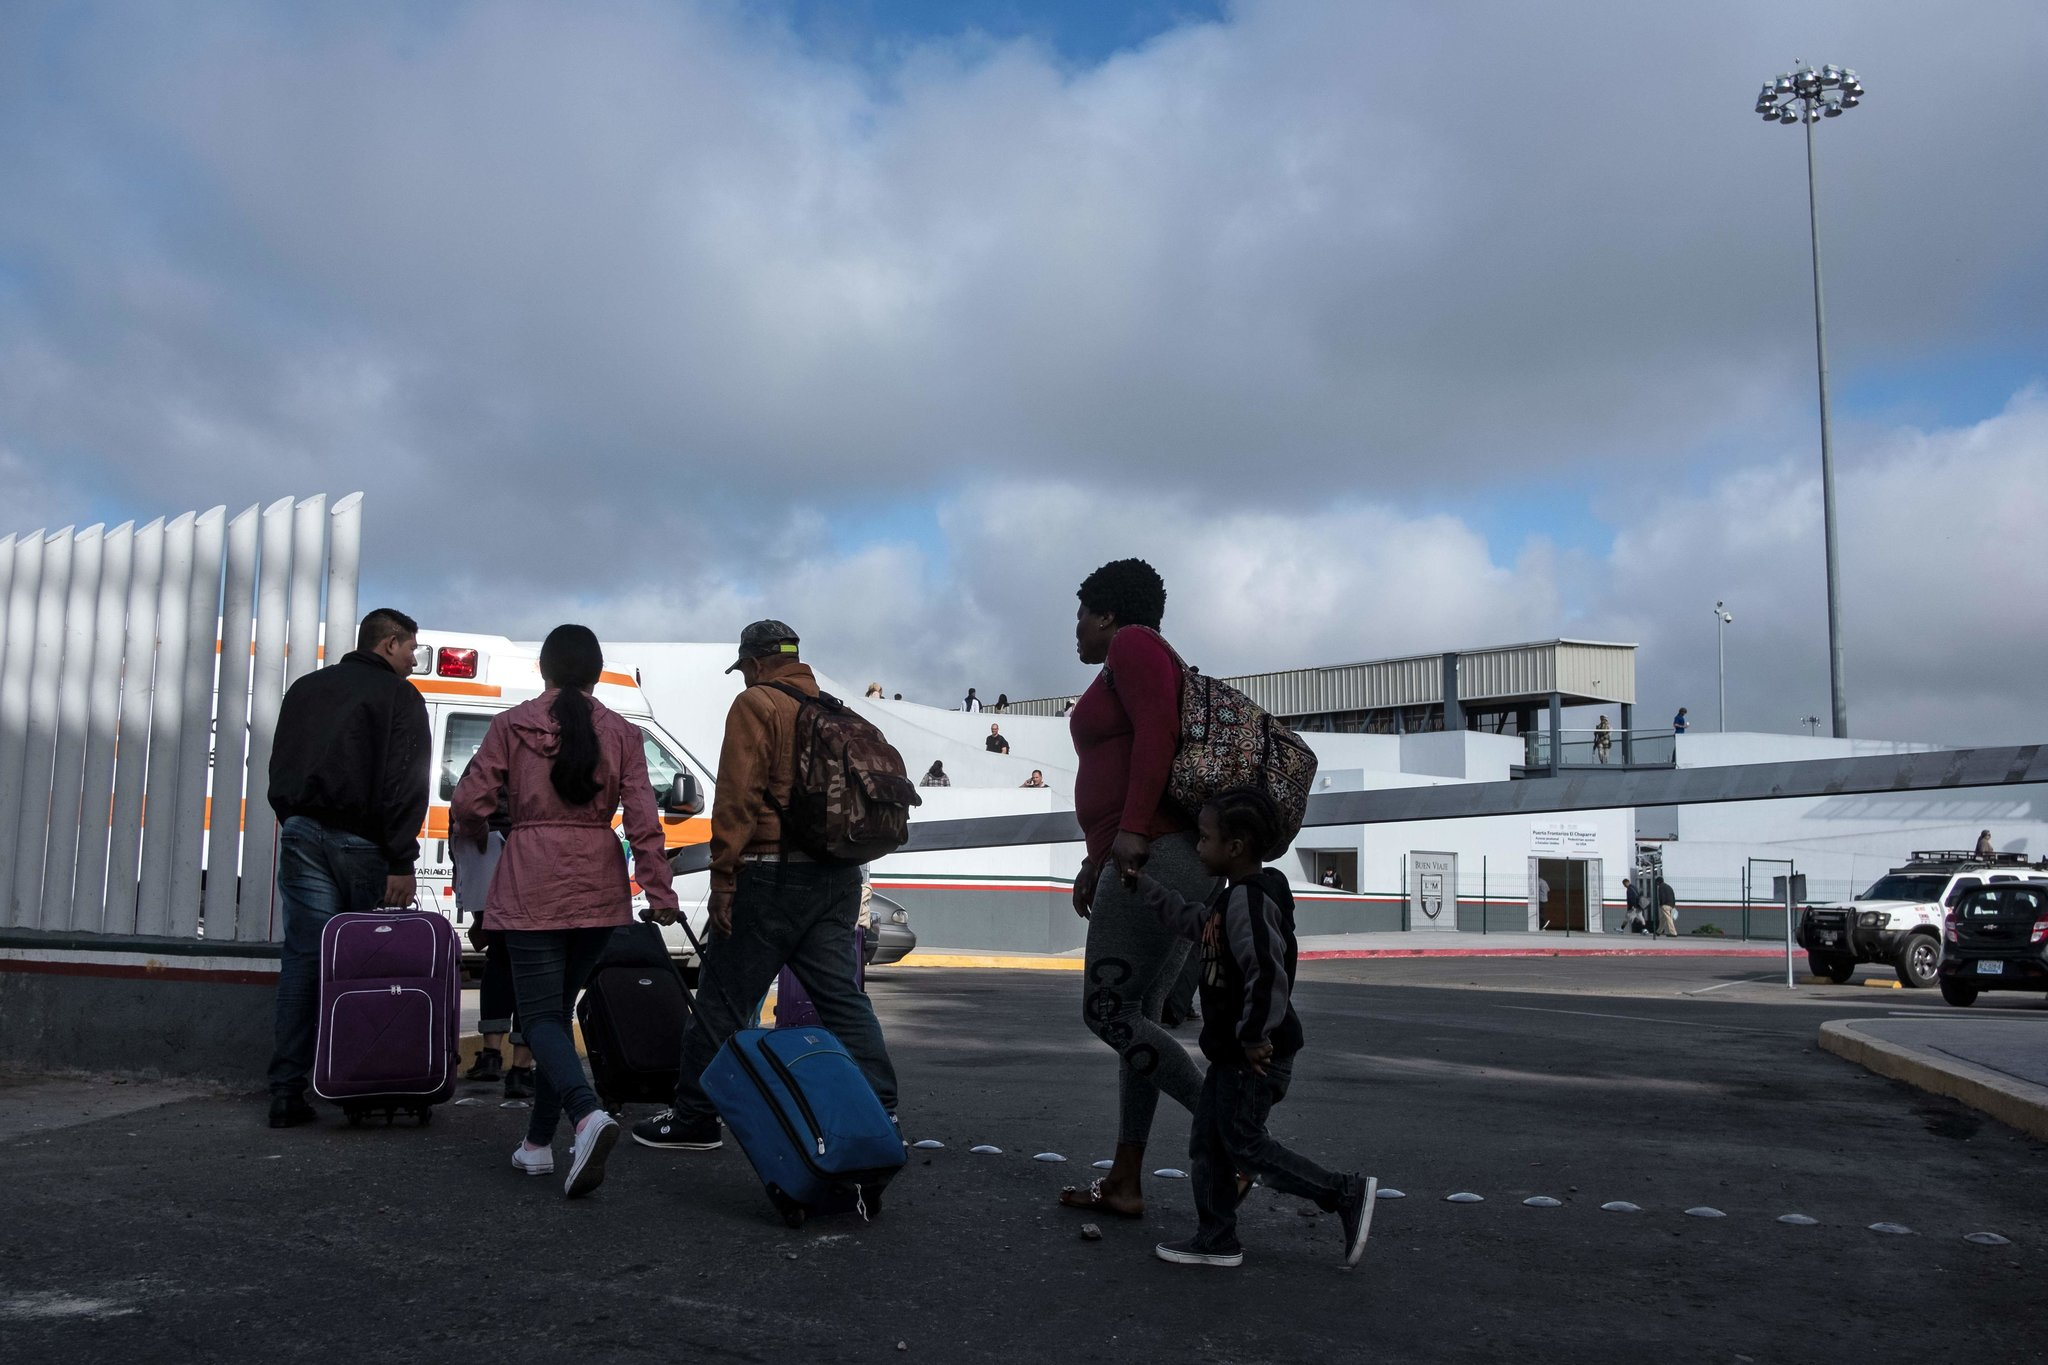 Asylum seekers last week in Tijuana, Mexico, at the El Chaparral port of entry. Credit Guillermo Arias/Agence France-Presse — Getty Images